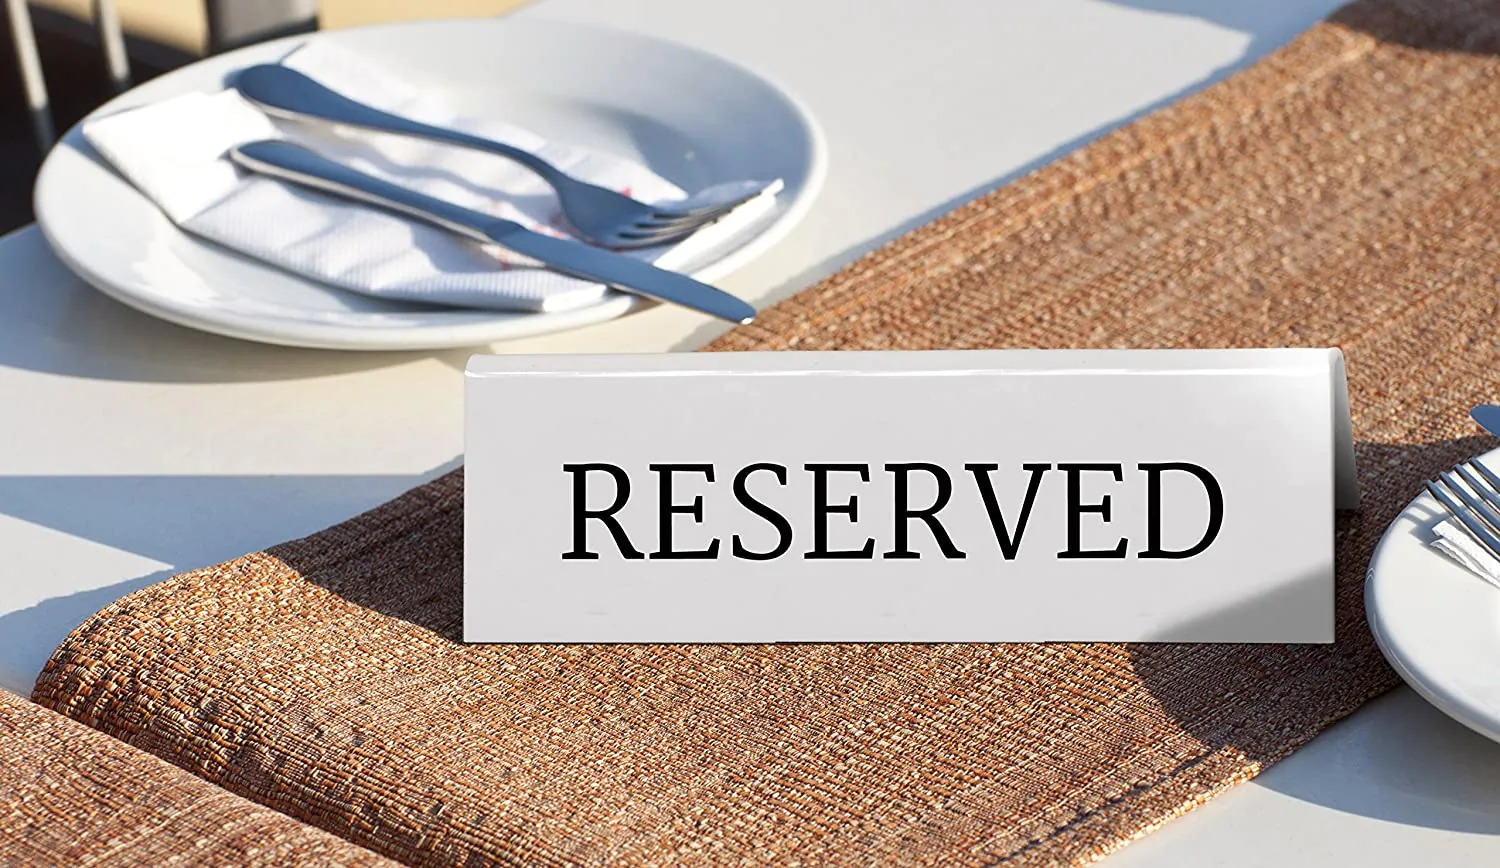 SECURIT TN-RES-EN-WT Table Boards - Accessories Signssecurit® Reservation Table Stands With English: 'Reserved' - White Acrylic Standards With Black Font - Set Of 5 5X10X4,5Cm | 0,1Kgwhite Tn-Res-En-Wt